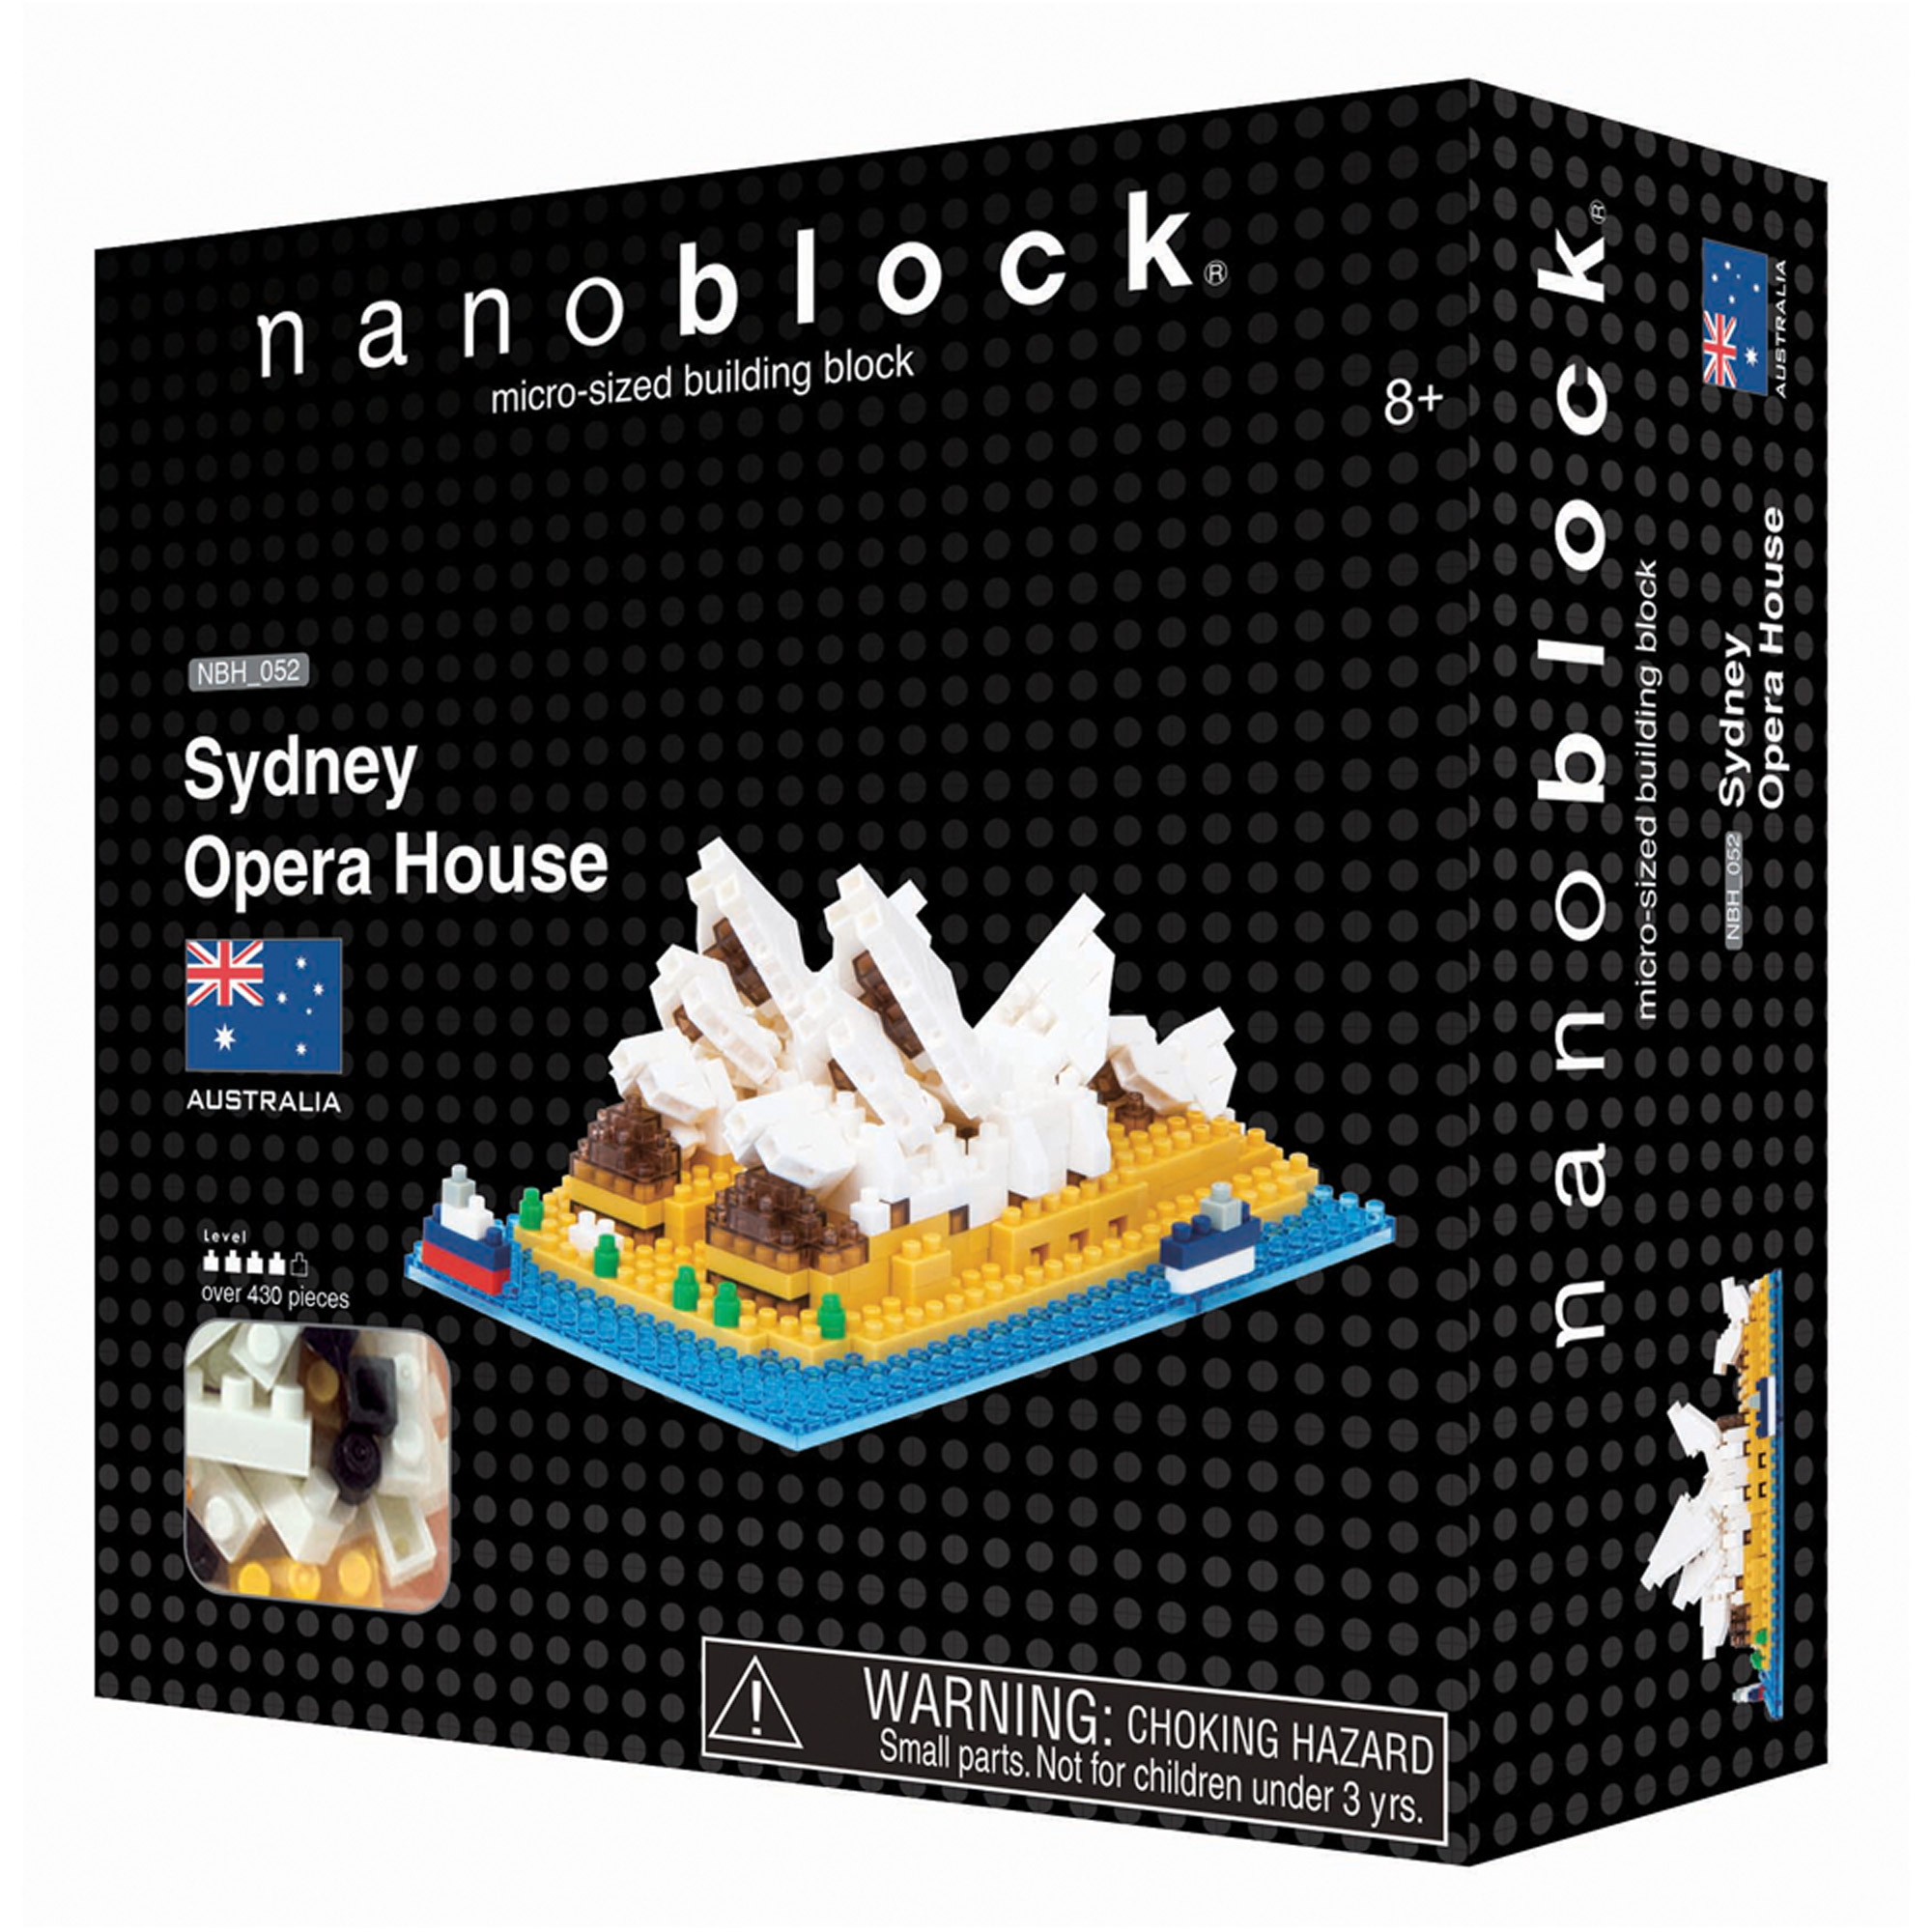 Nanoblock Sites to See Level 4 Sydney Opera House Puzzle, 430 Pieces by Ohio Art